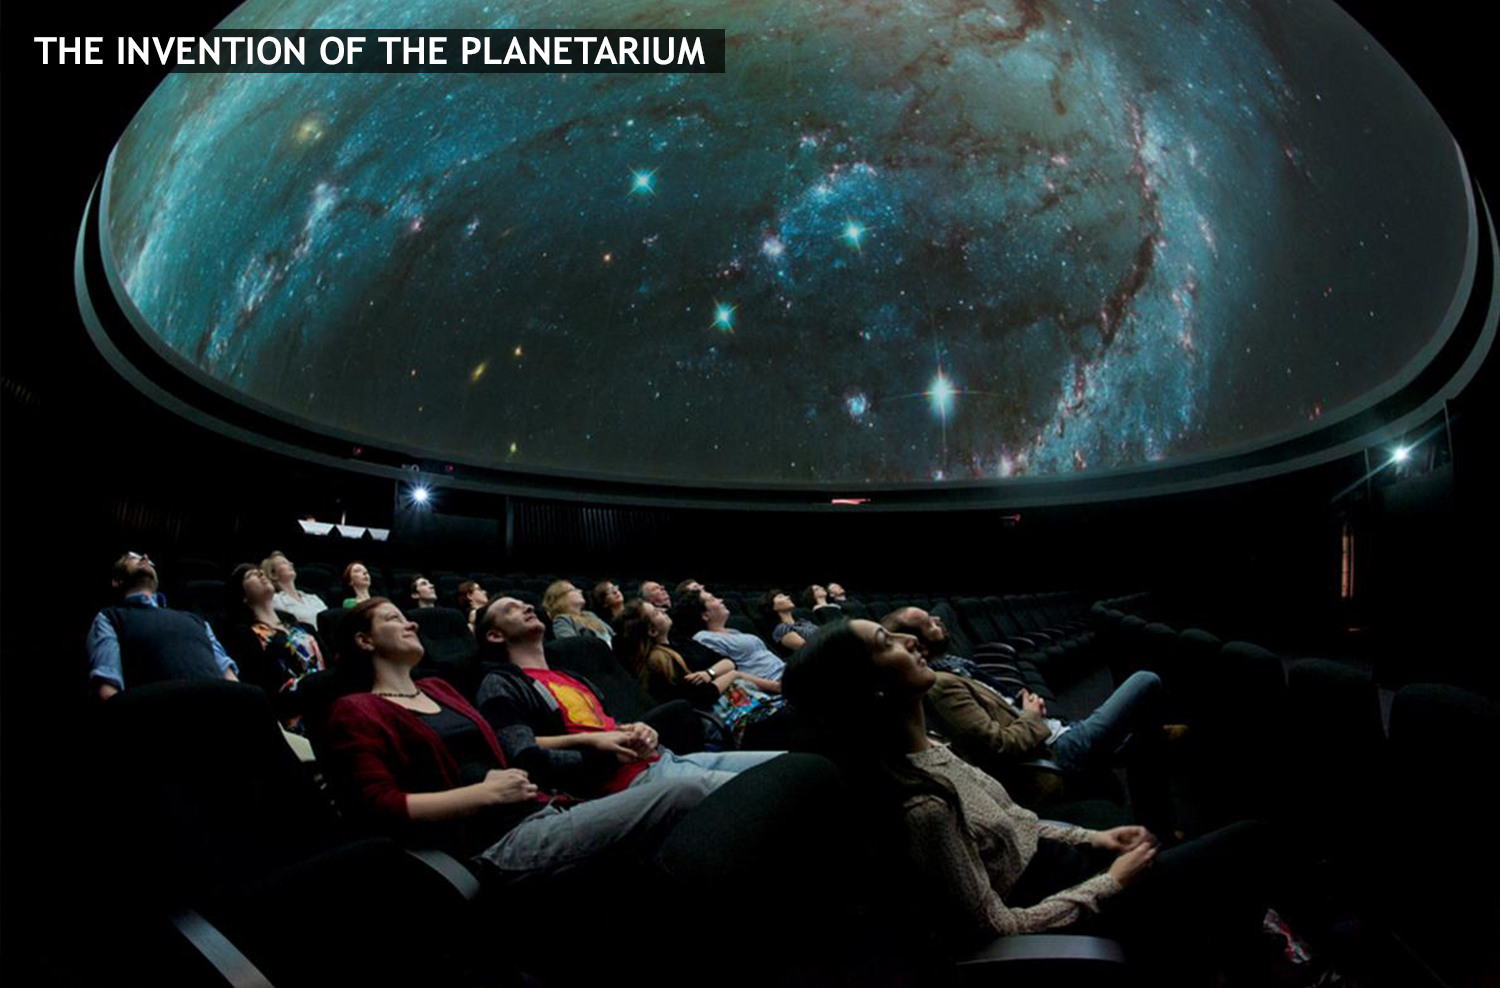 the invention of the planetarium